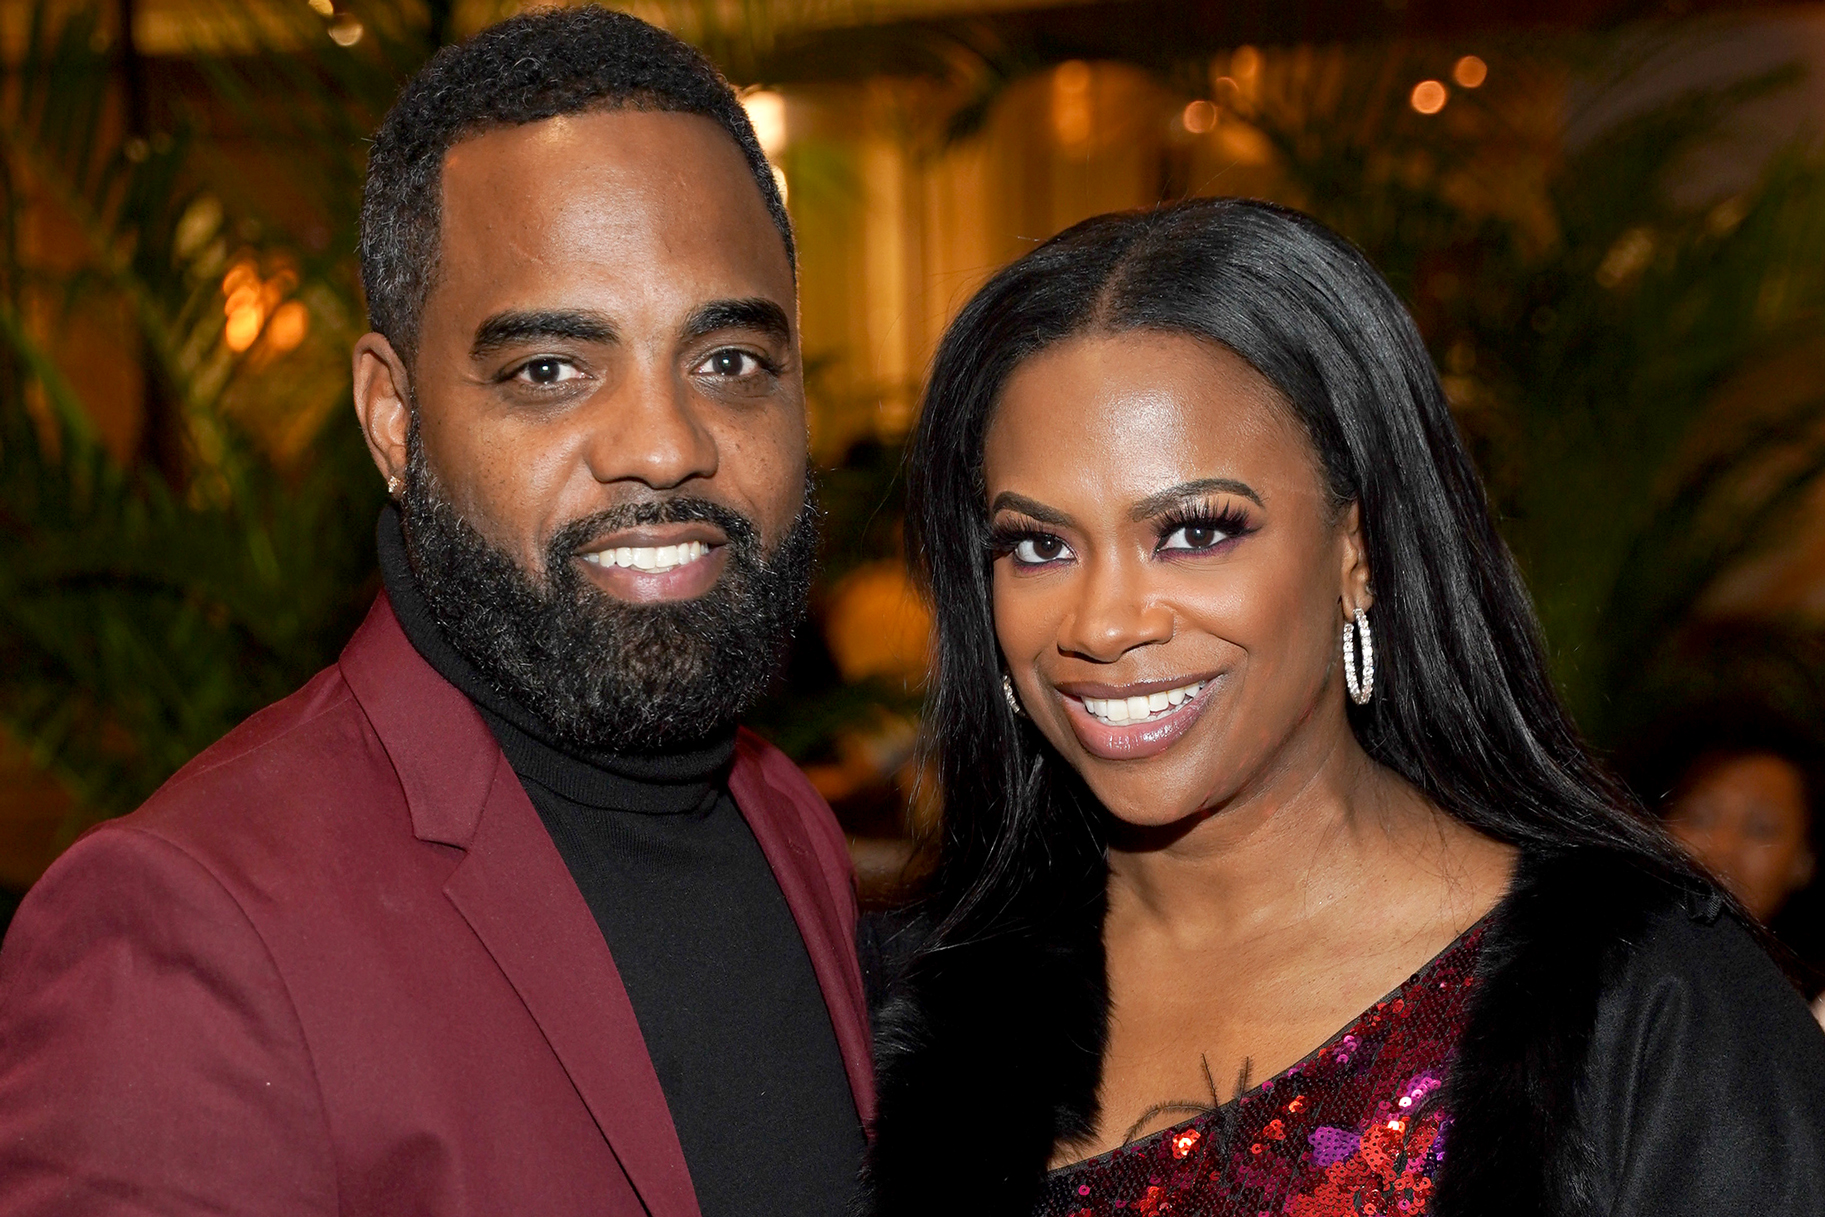 kandi-burruss-and-todd-tucker-vote-together-see-the-video-and-hear-their-message